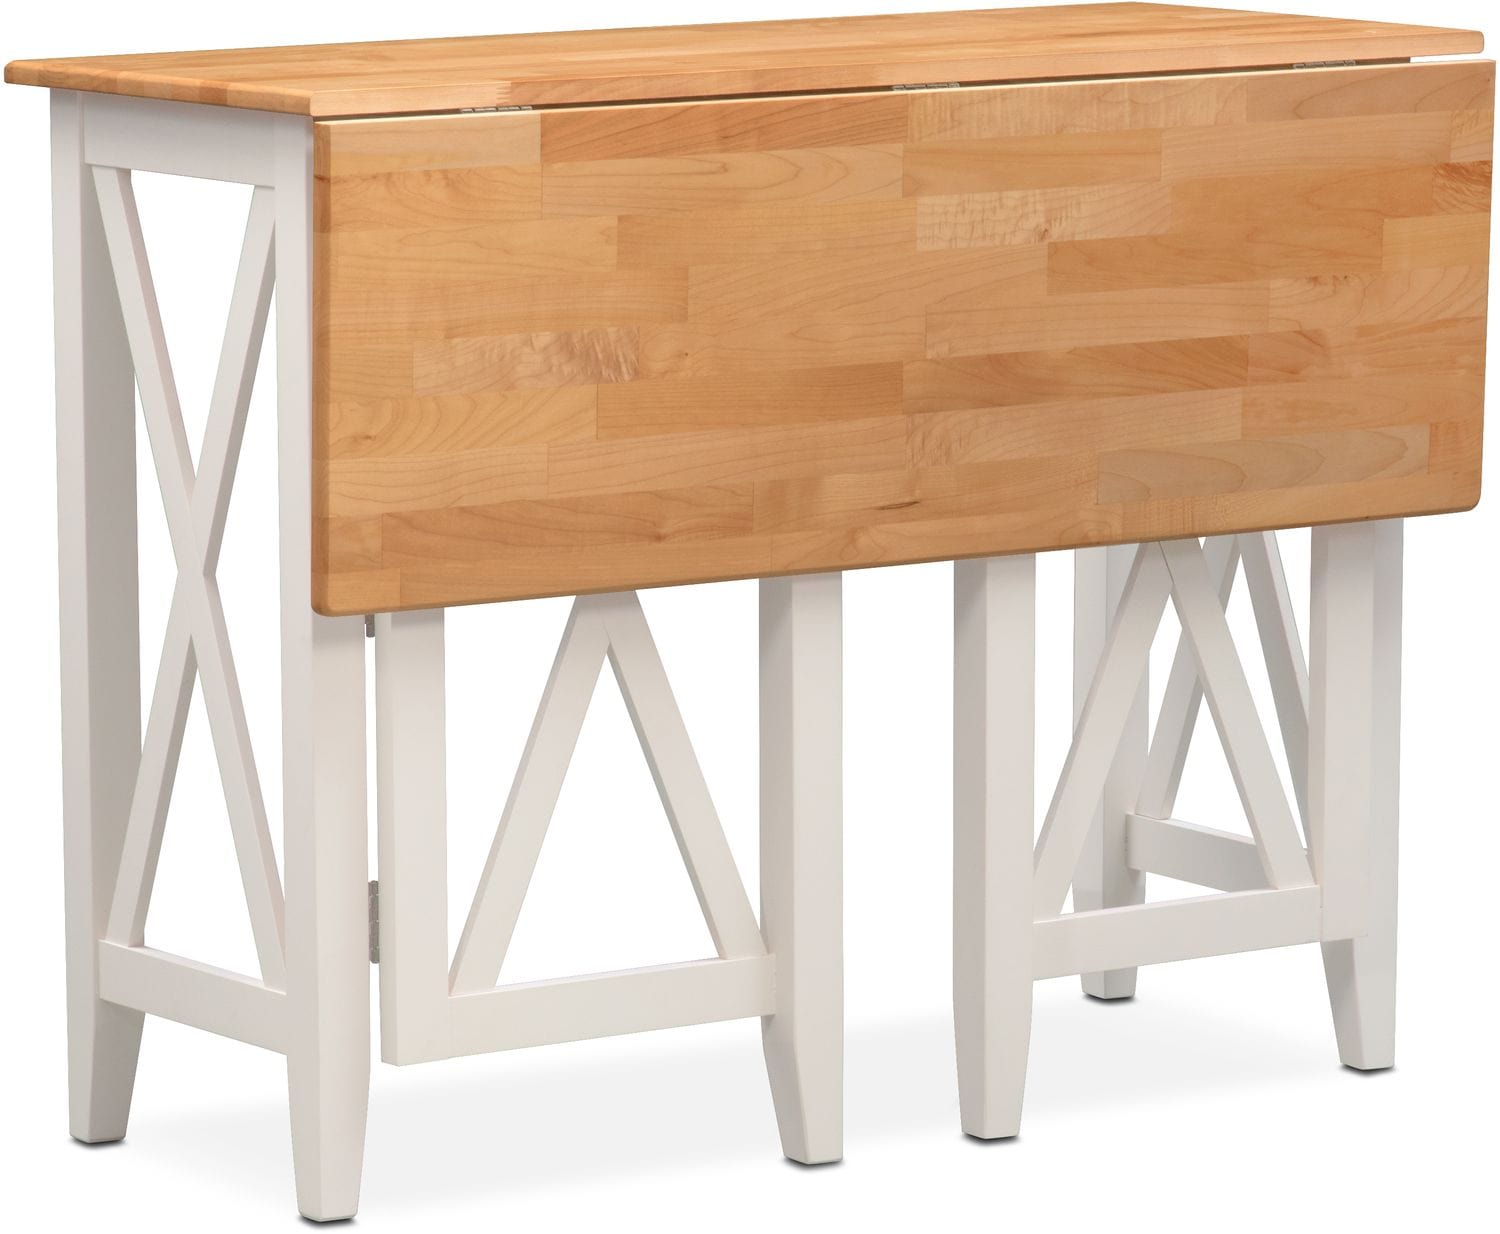 Dining Room Furniture - Nantucket Breakfast Bar - Maple and White